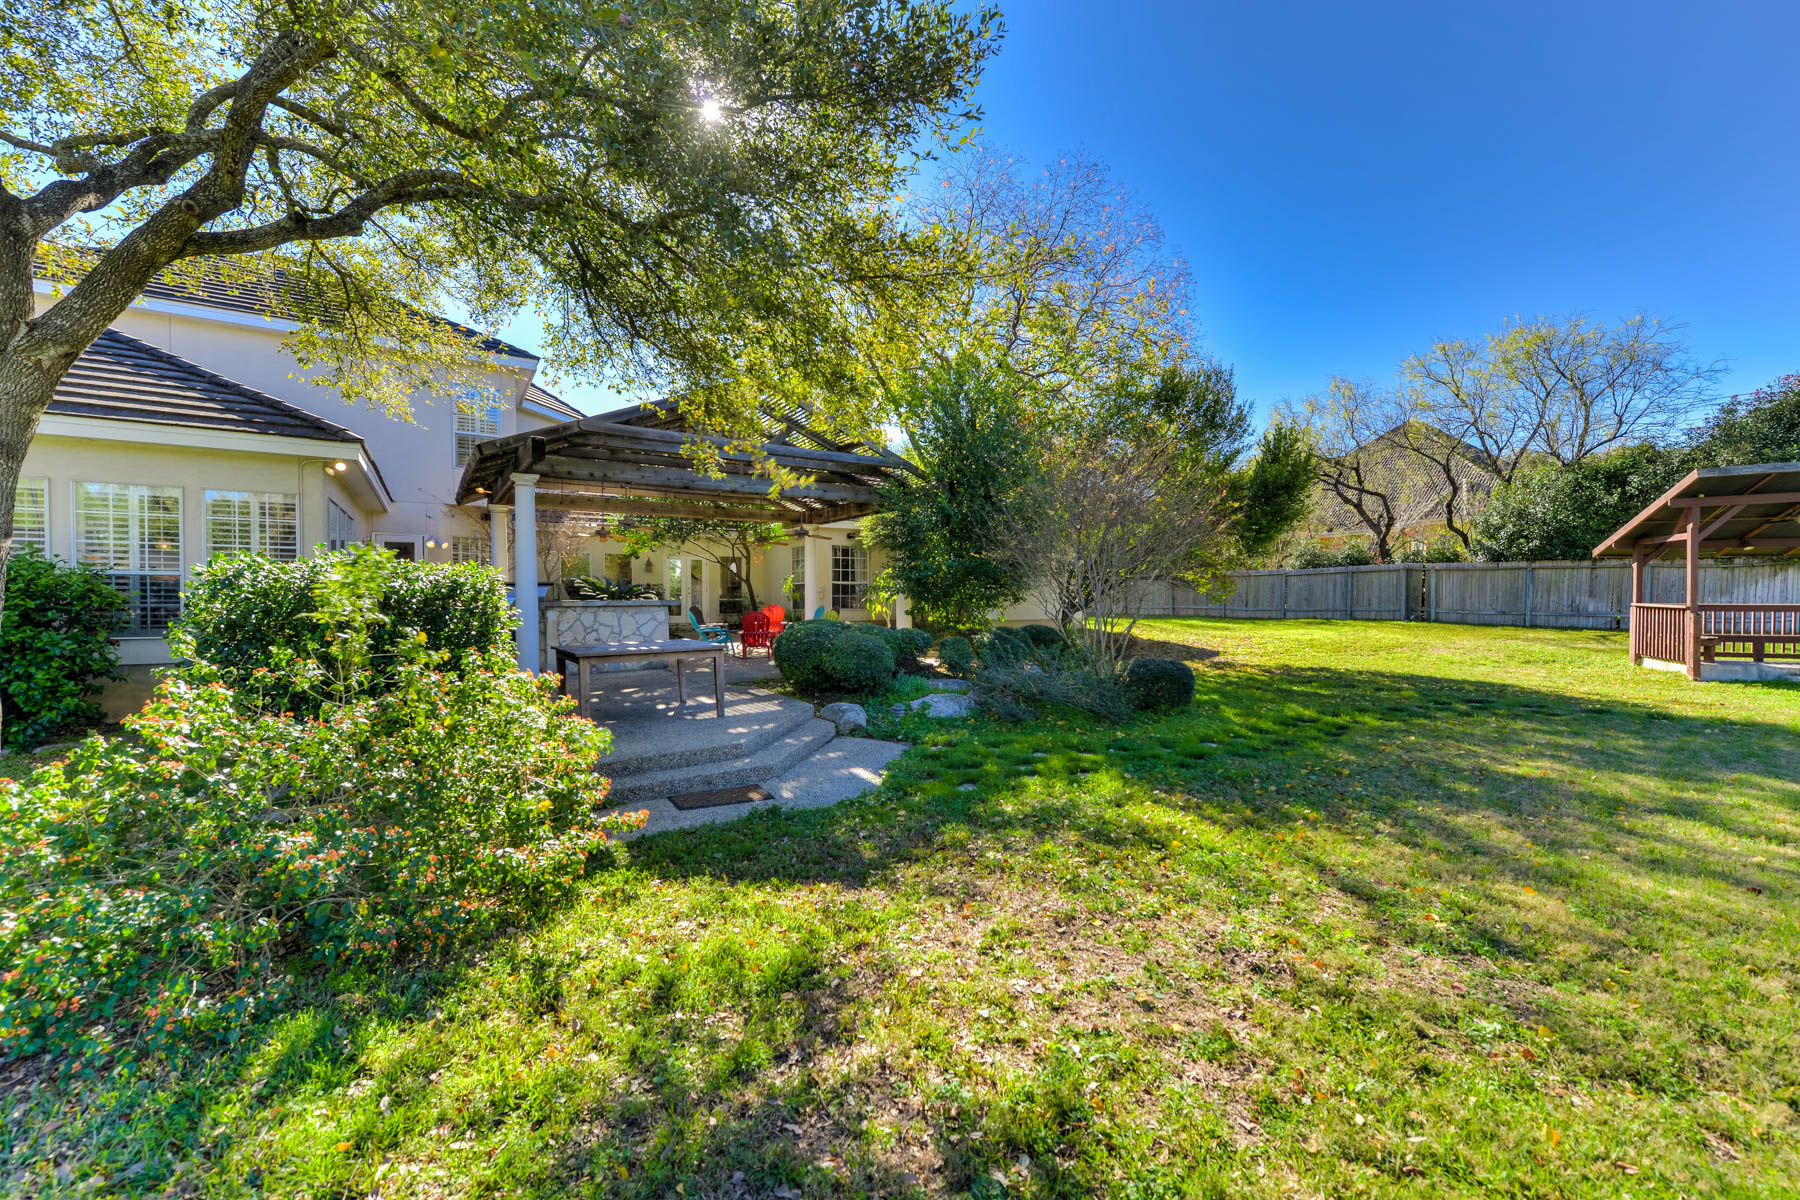 Additional photo for property listing at Gorgeous Home in Shavano Park With a Tennis Court 107 Post Oak Way San Antonio, Texas 78230 Estados Unidos